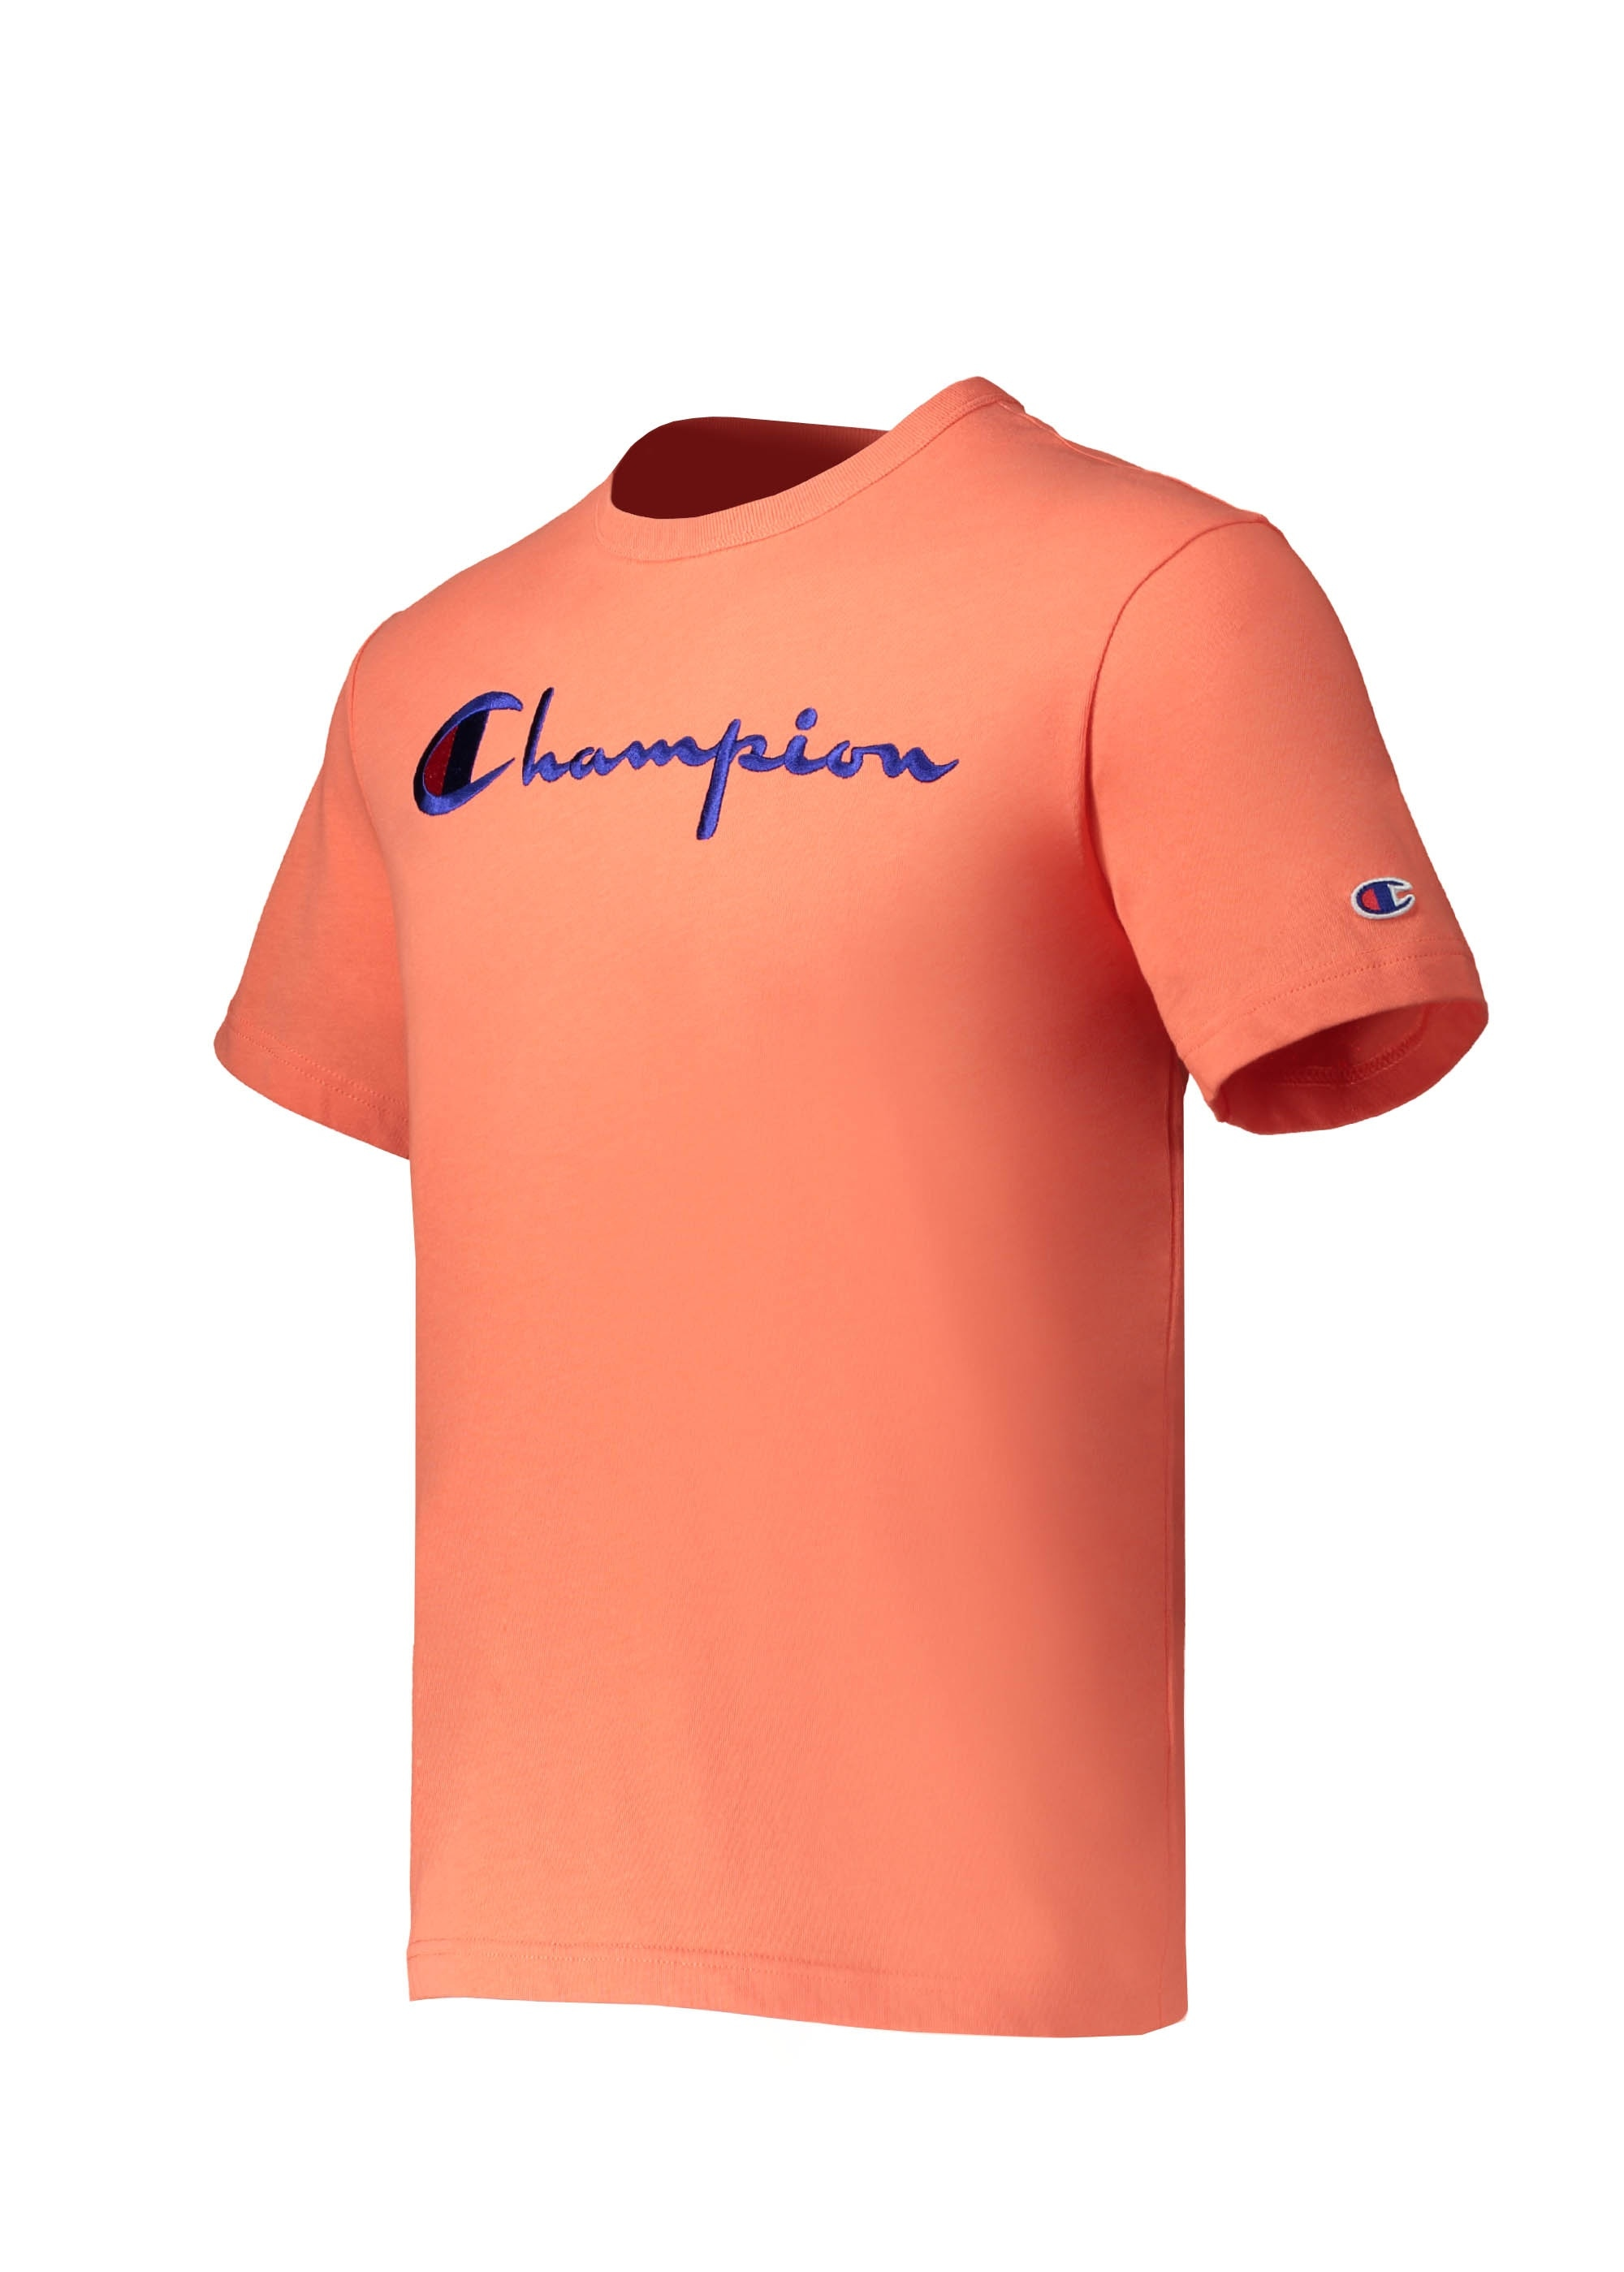 2da20c21 Champion Crewneck T-Shirt - Orange - T-shirts from Triads UK